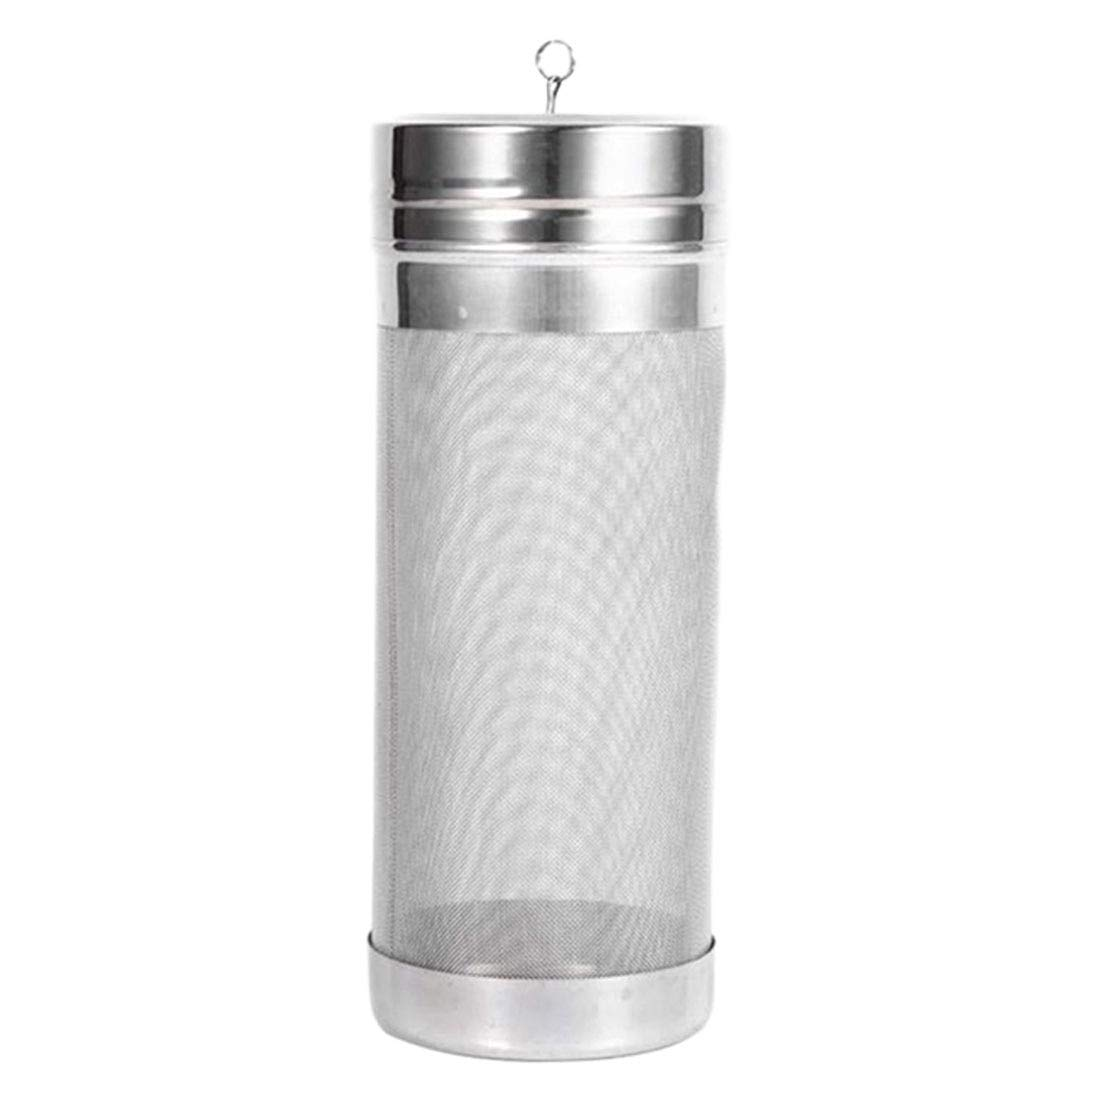 Best Quality 300 Micron Strainer Stainless Steel Homemade Brew Beer Hop Mesh Filter, Stainless Steel Mesh - Beer Filters, Stainless Mesh, Stainless Filter Basket Brew Beer, Beer Brewing Filter by KedyStore-TM